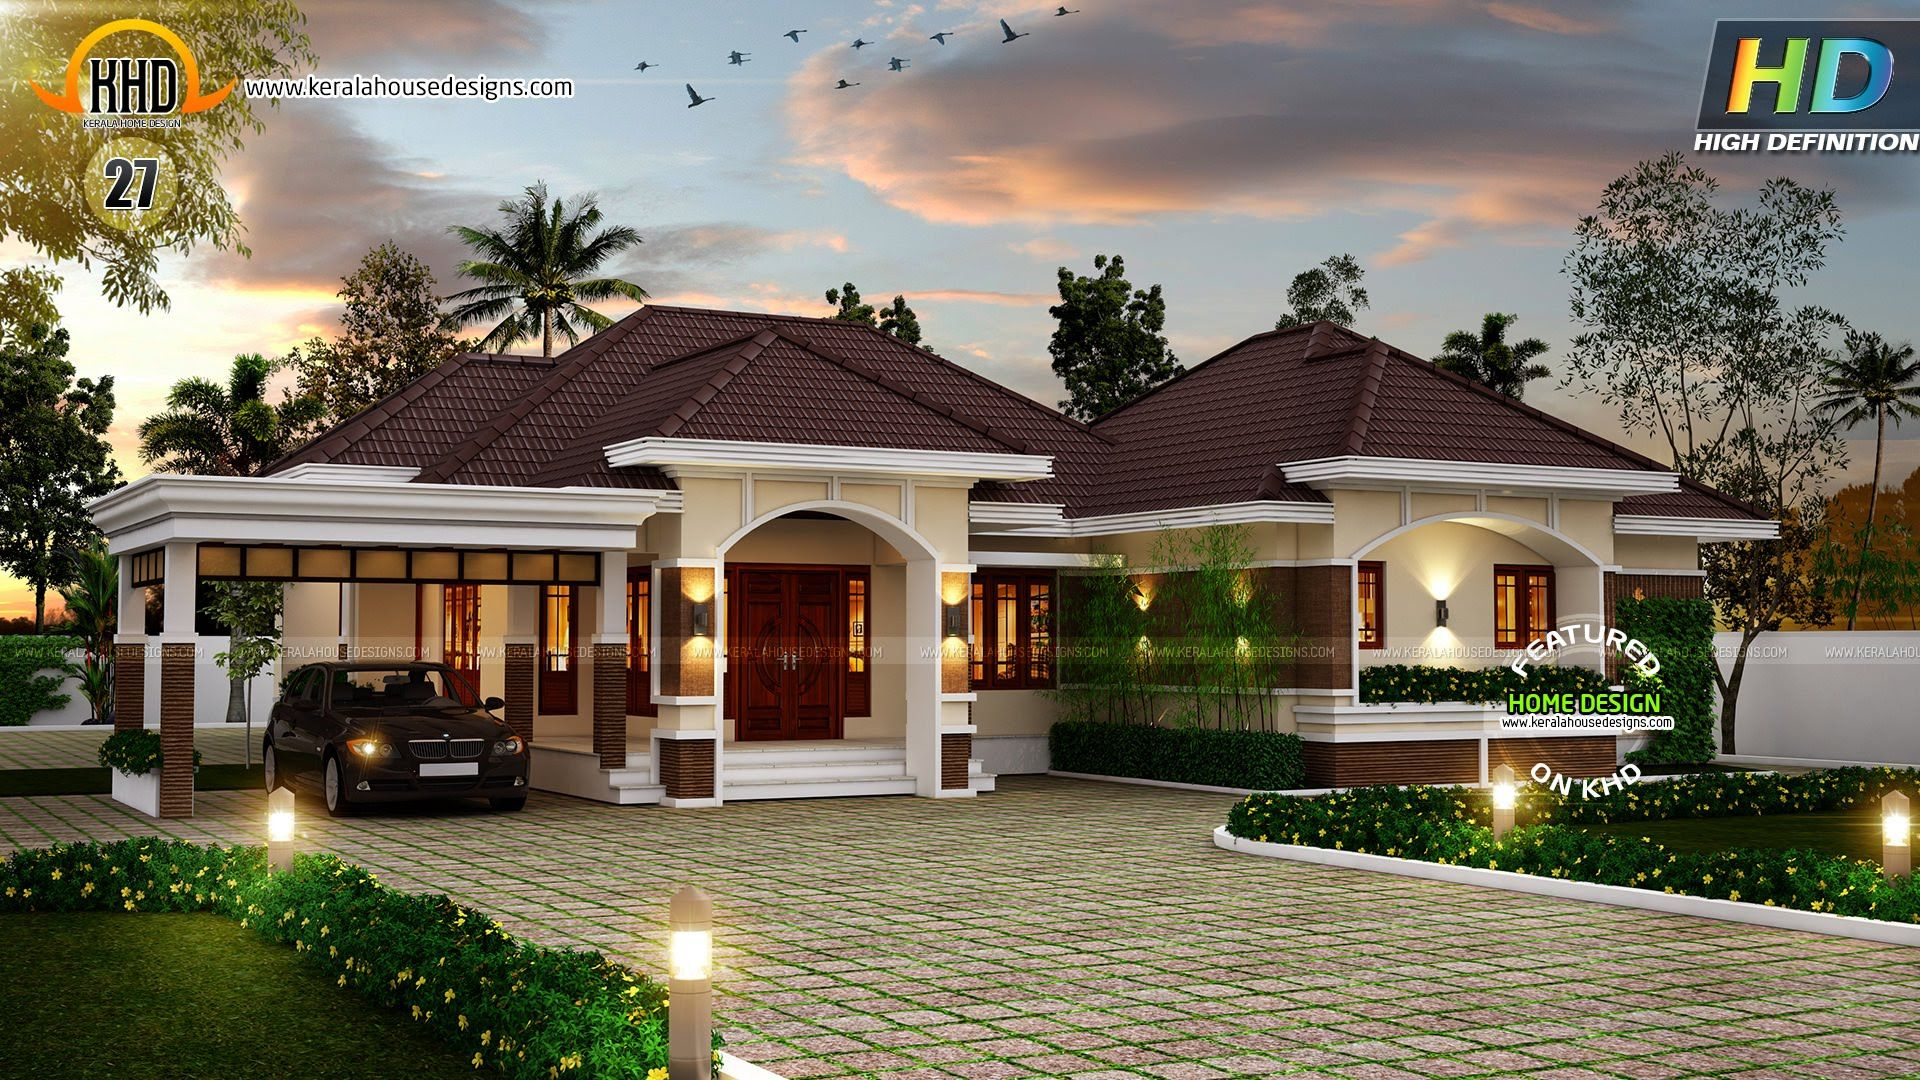 New House Plans For October 2015 Kerala House Design